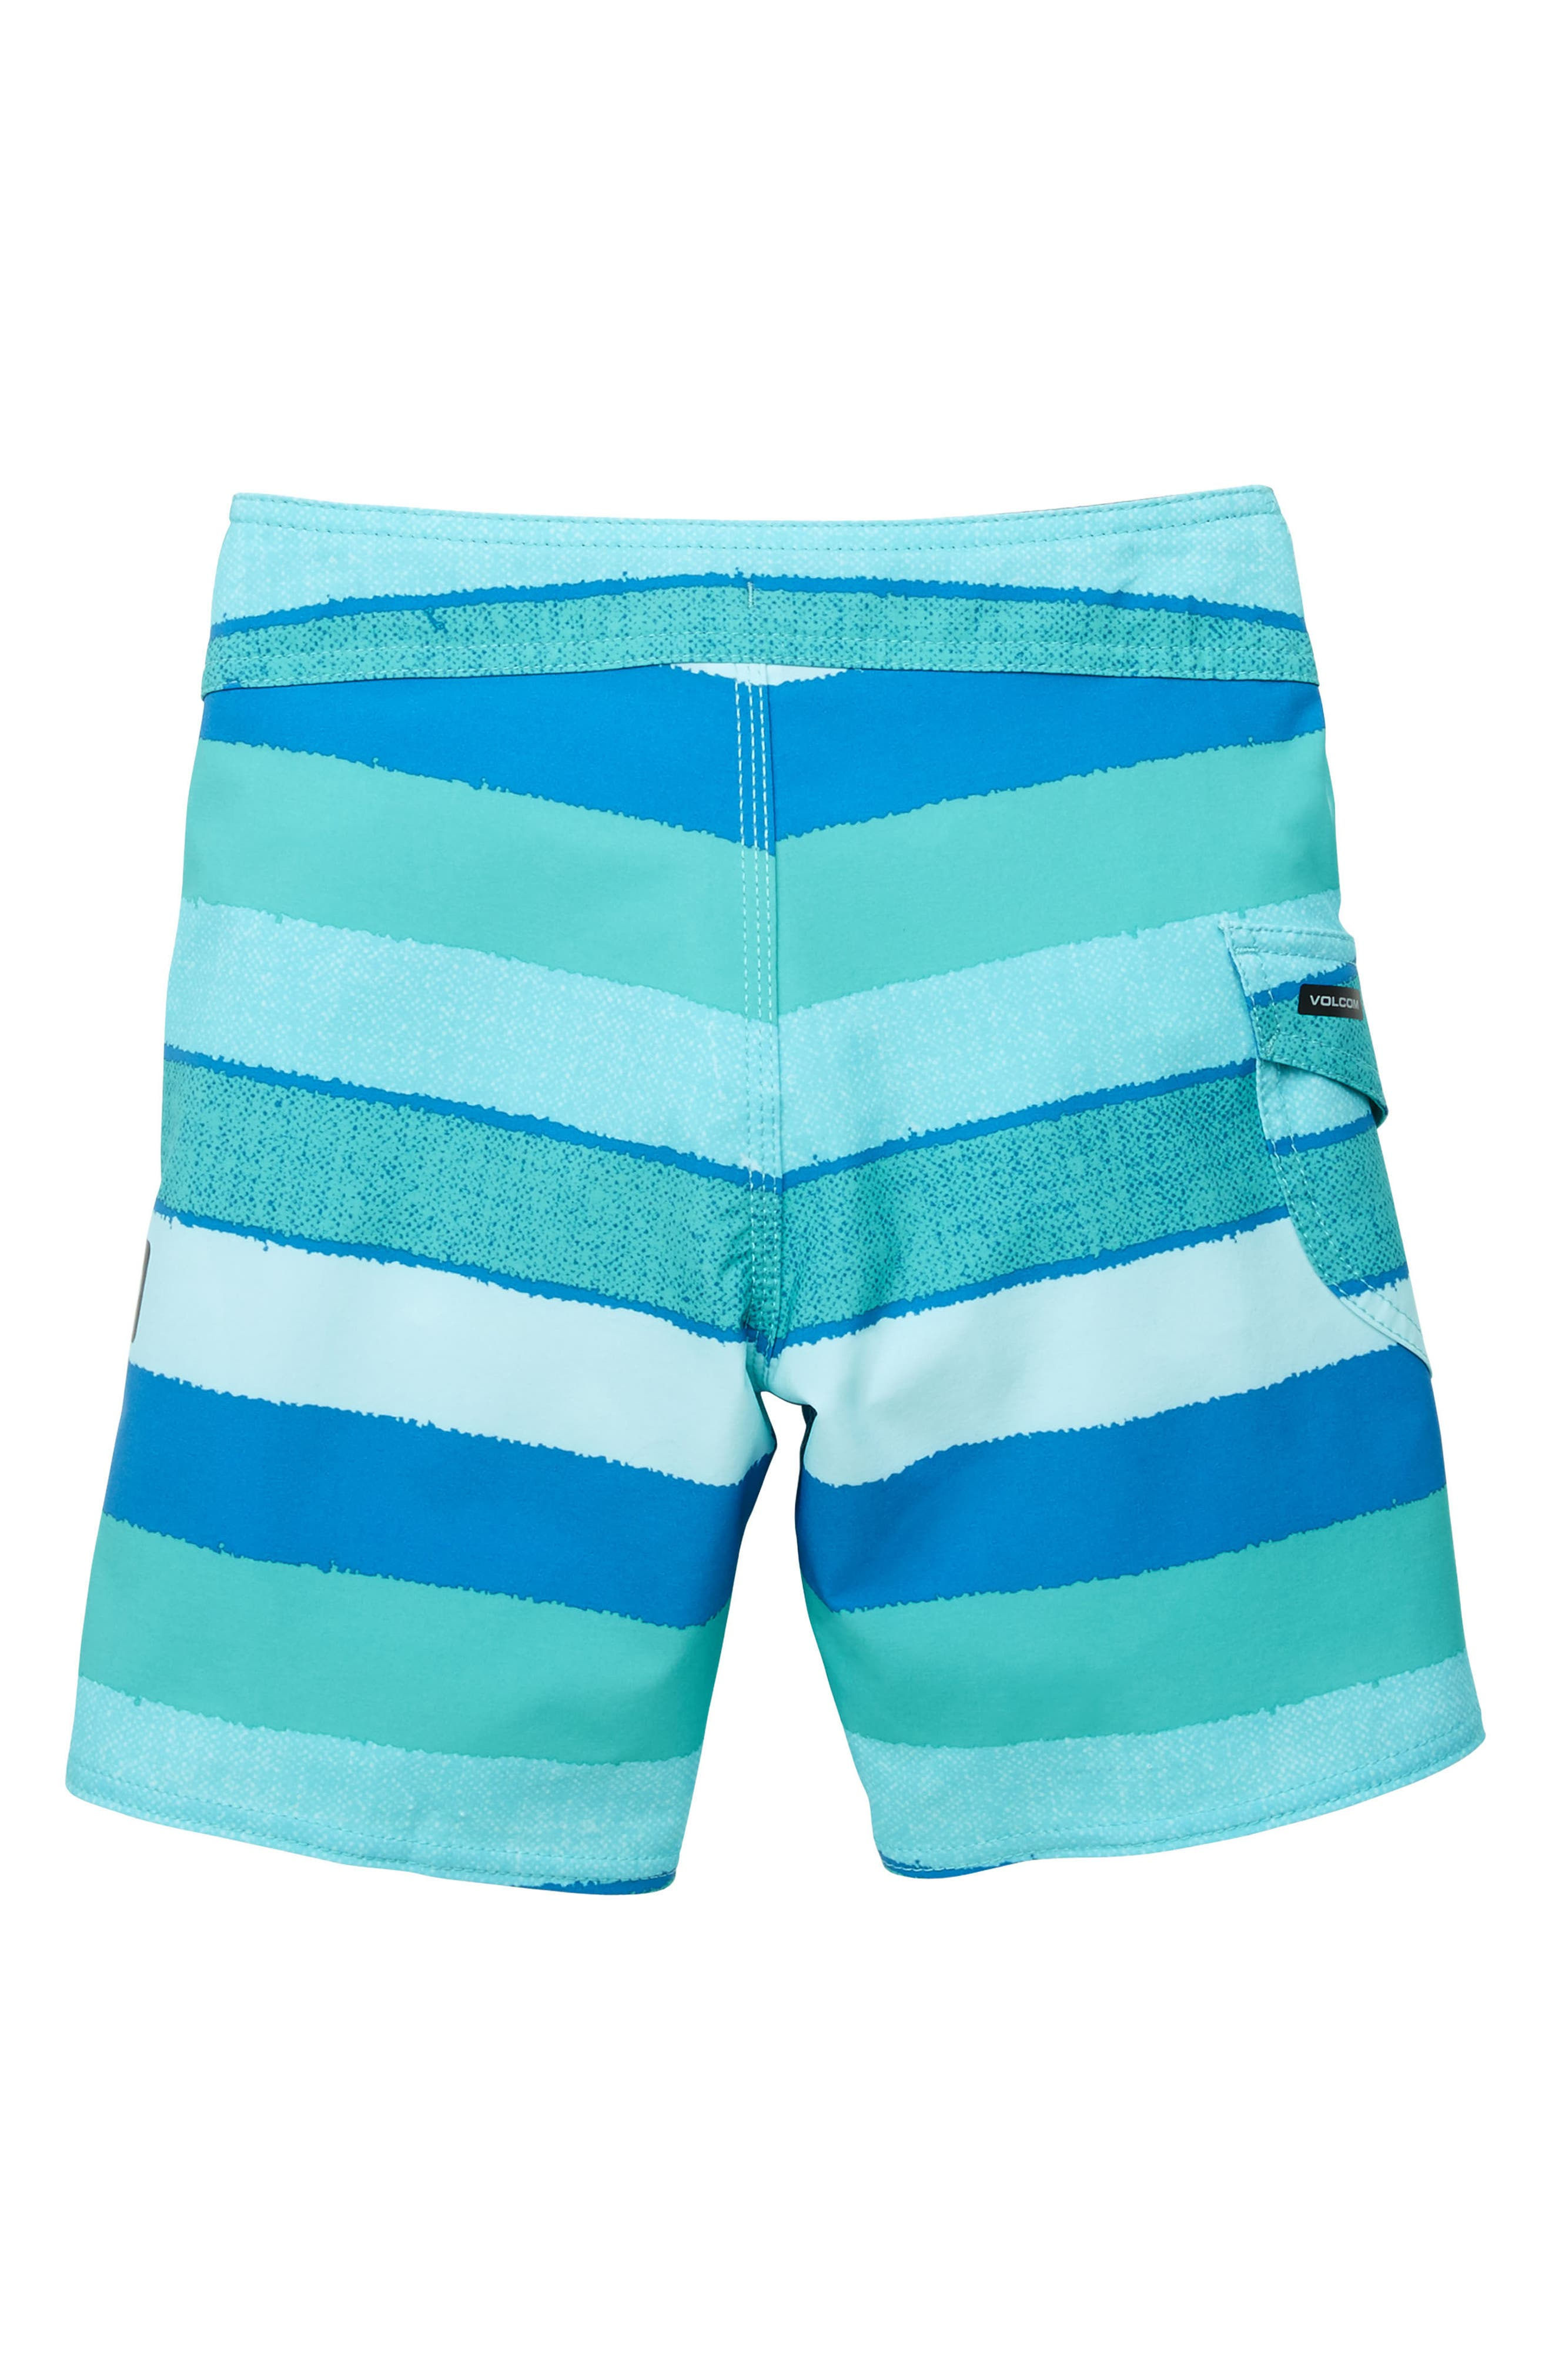 Magnetic Liney Mod Board Shorts,                             Alternate thumbnail 2, color,                             Turquoise